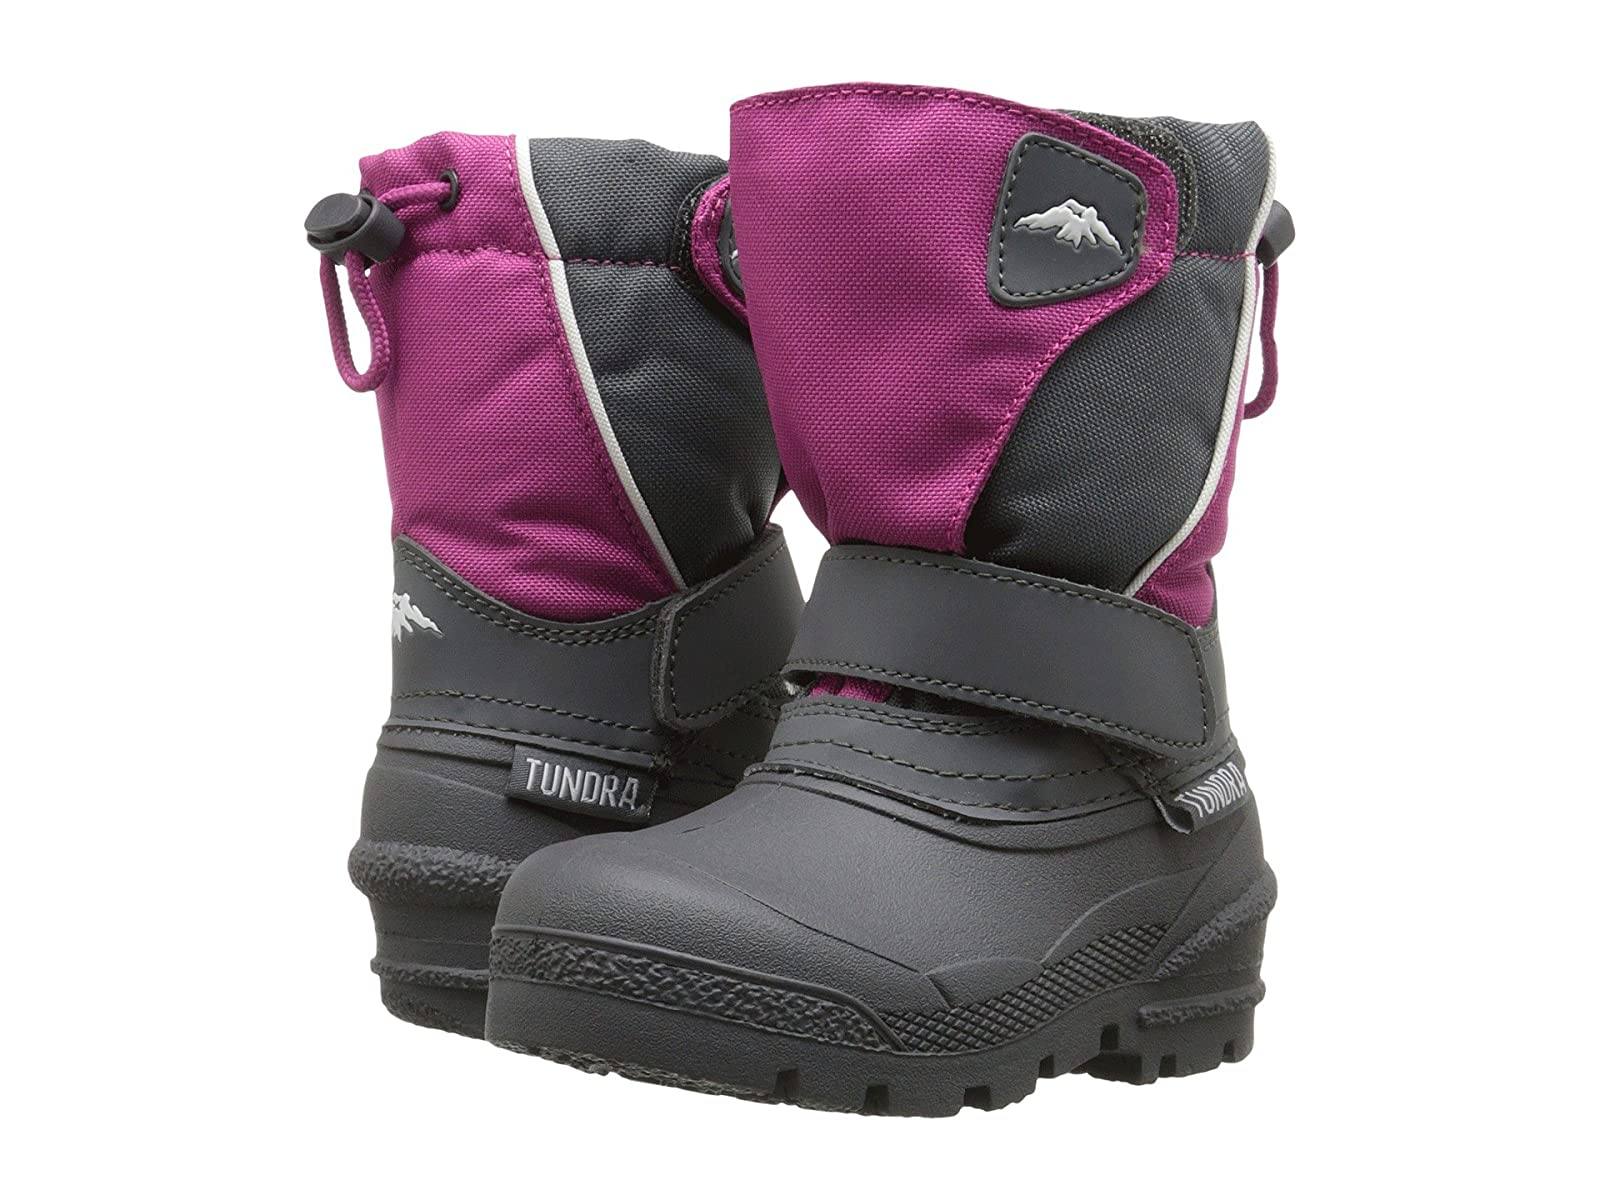 Tundra Boots Kids Quebec (Toddler/Little Kid/Big Kid)Economical and quality shoes